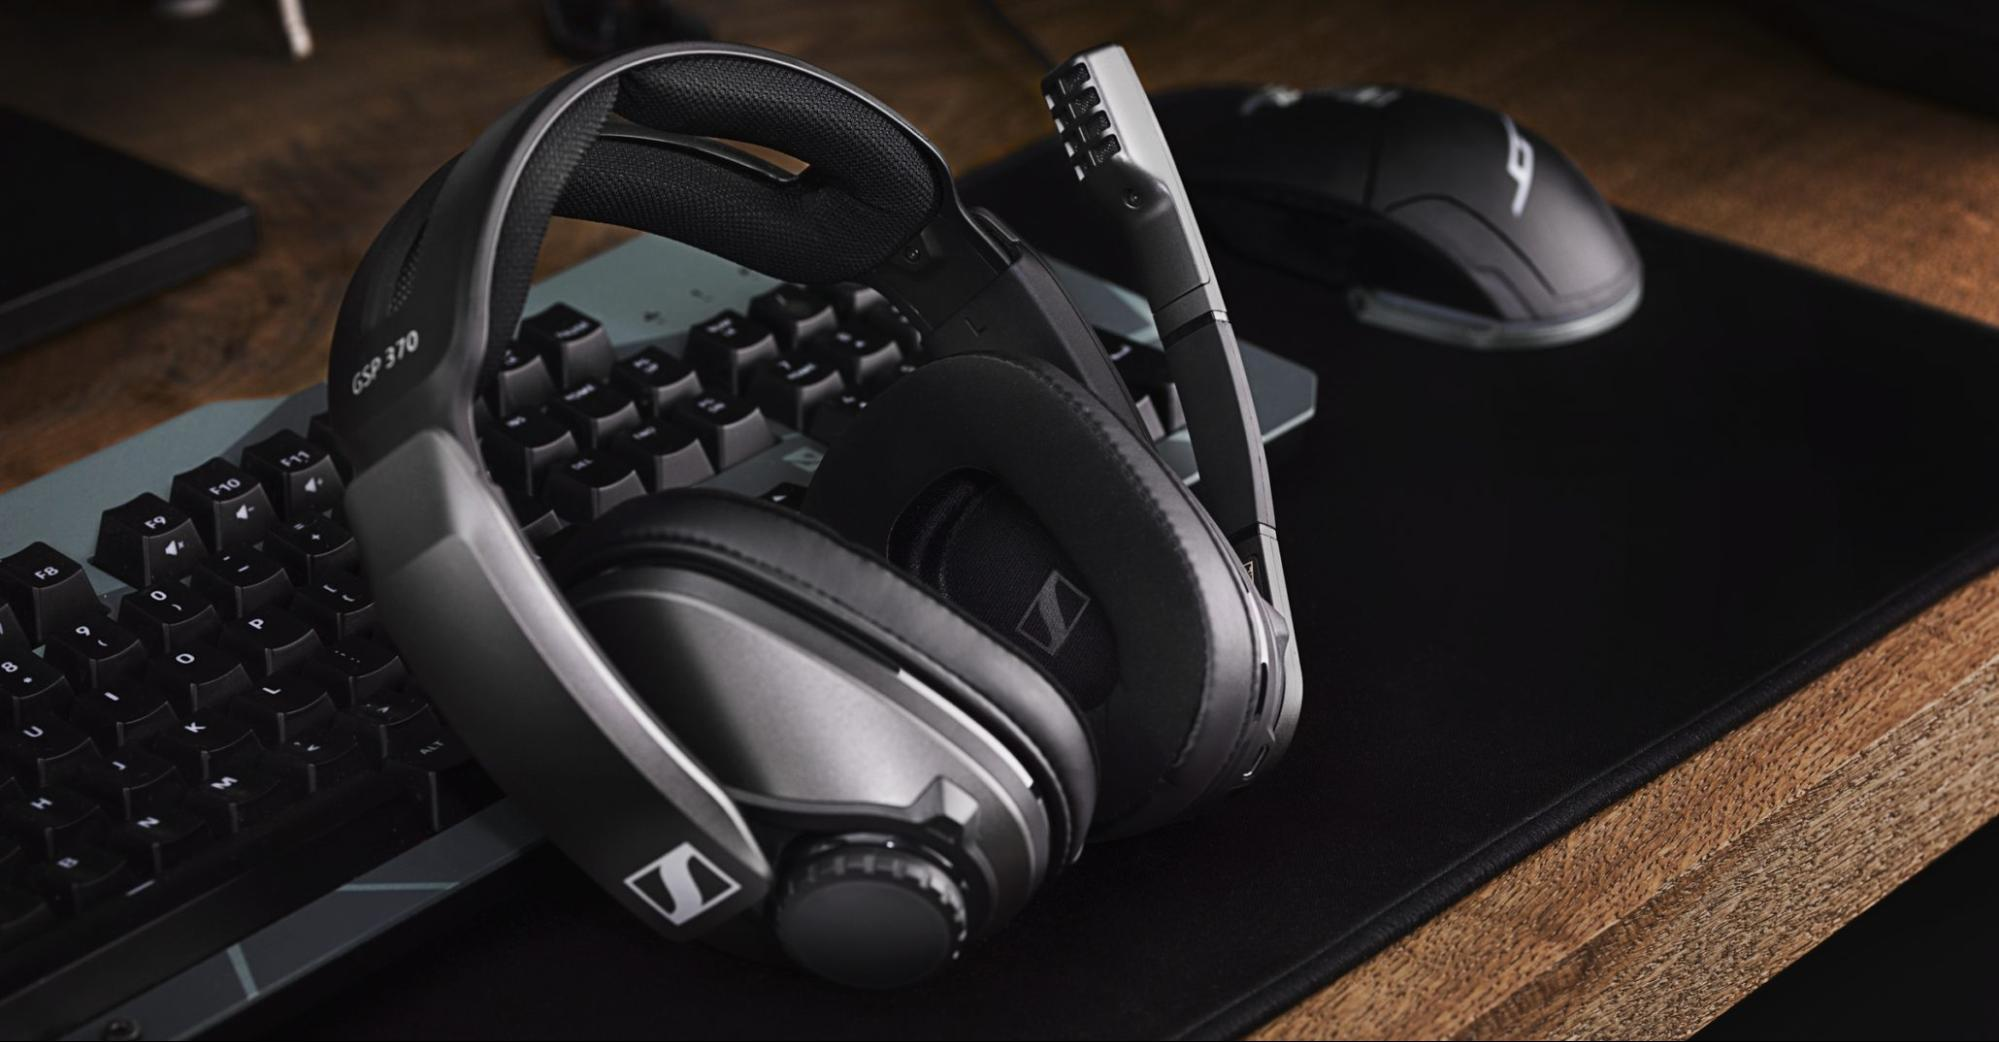 Sennheiser headphones with keyboard, mouse, and desk mat